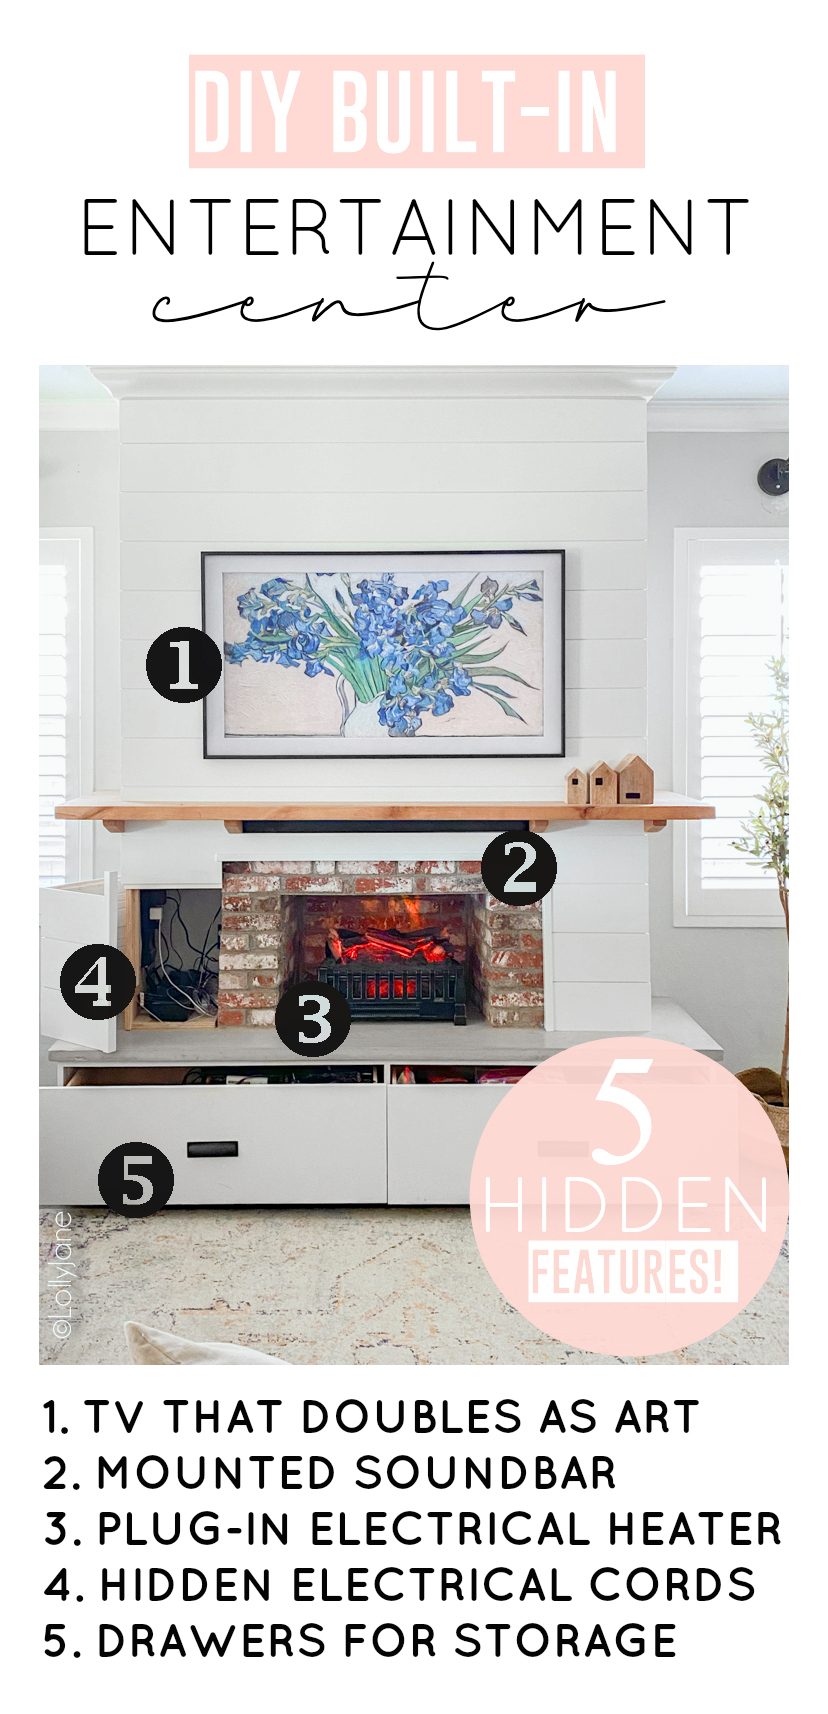 5 secret built-in features to this beautiful Modern Farmhouse Home Entertainment Center built from scratch-- see how it was done! #modernfarmhouse #fauxfireplace #entertainmentsystem #diy #diyhomedecor